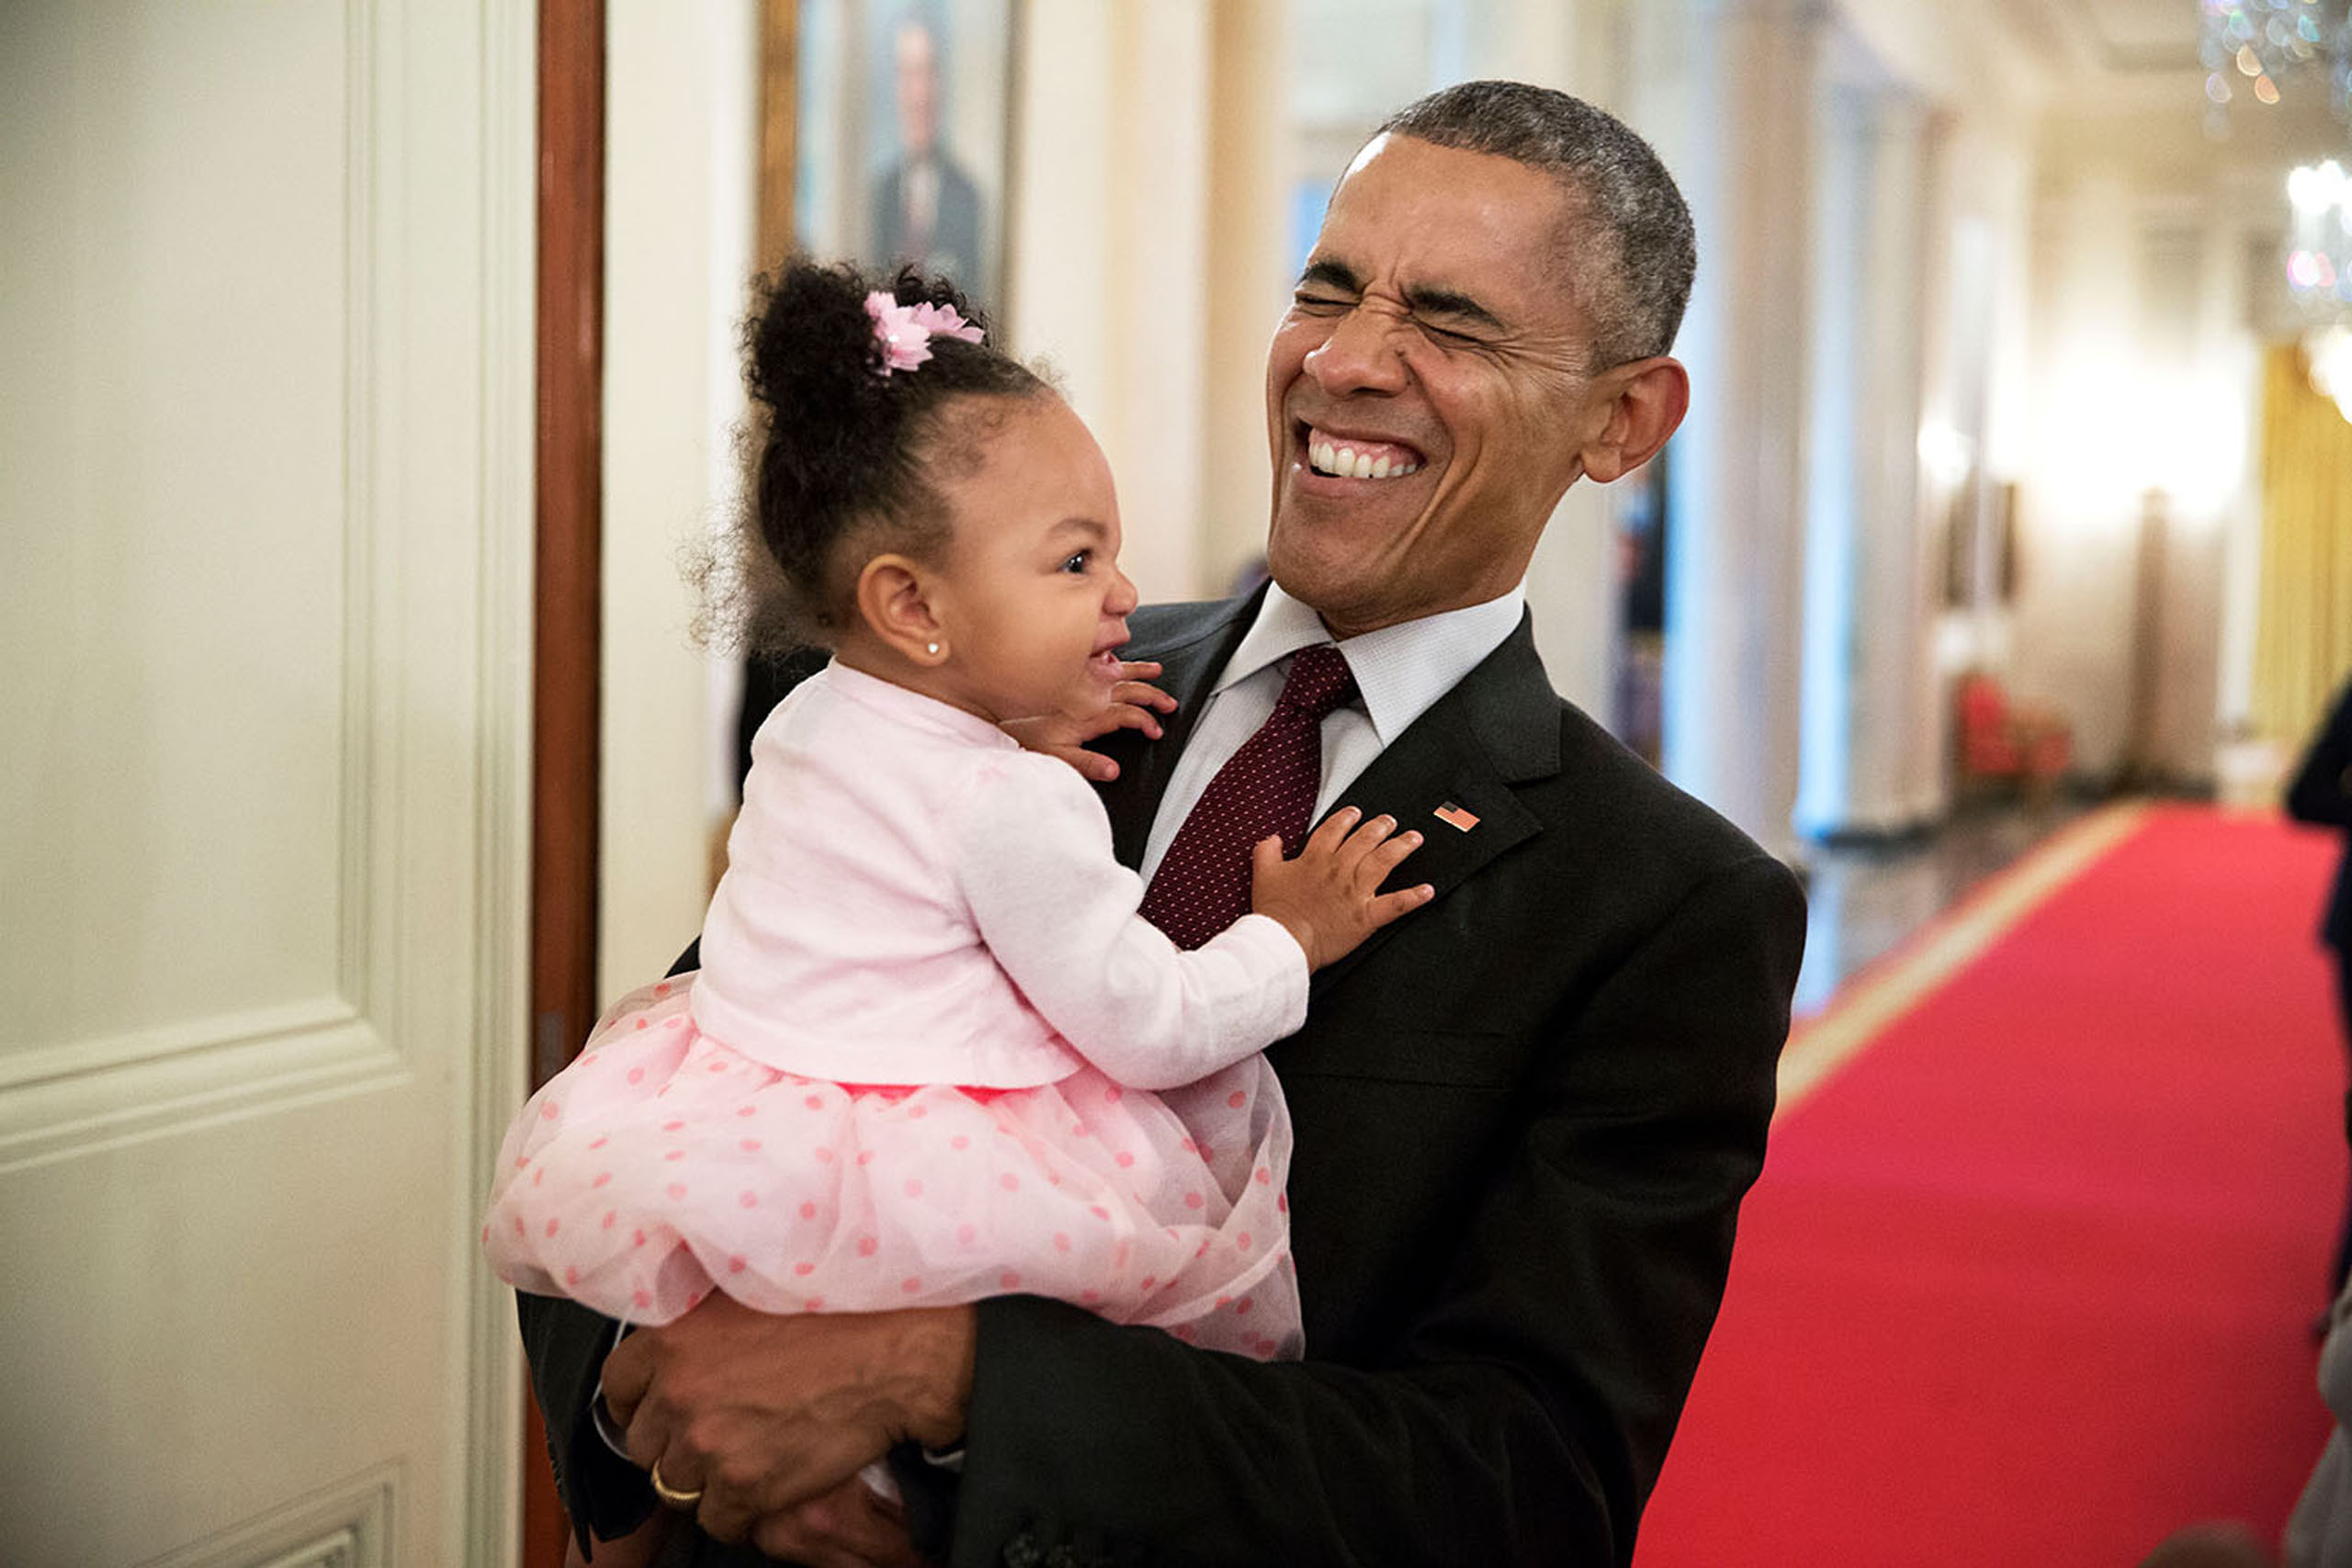 Obama holds the daughter of former staff member Darienne Page Rakestraw in the Cross Hall of the White House, on April 3, 2015.